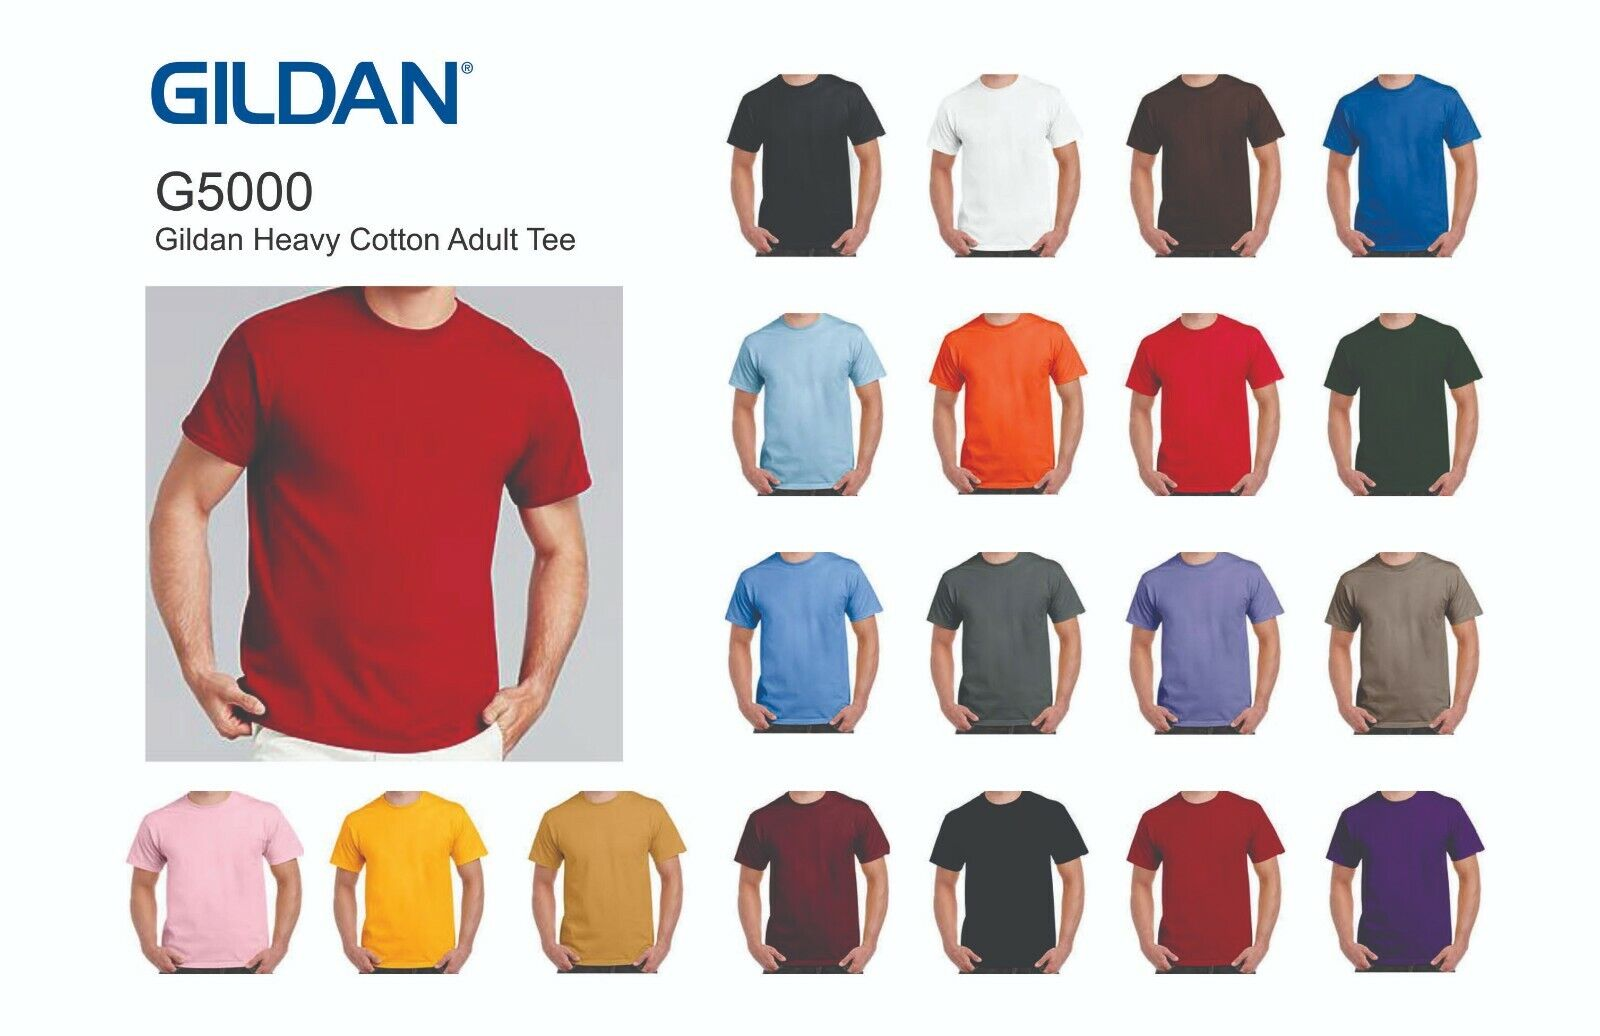 5000 GILDAN Heavy Duty Cotton Tee - Blank Shirts, S-5XL